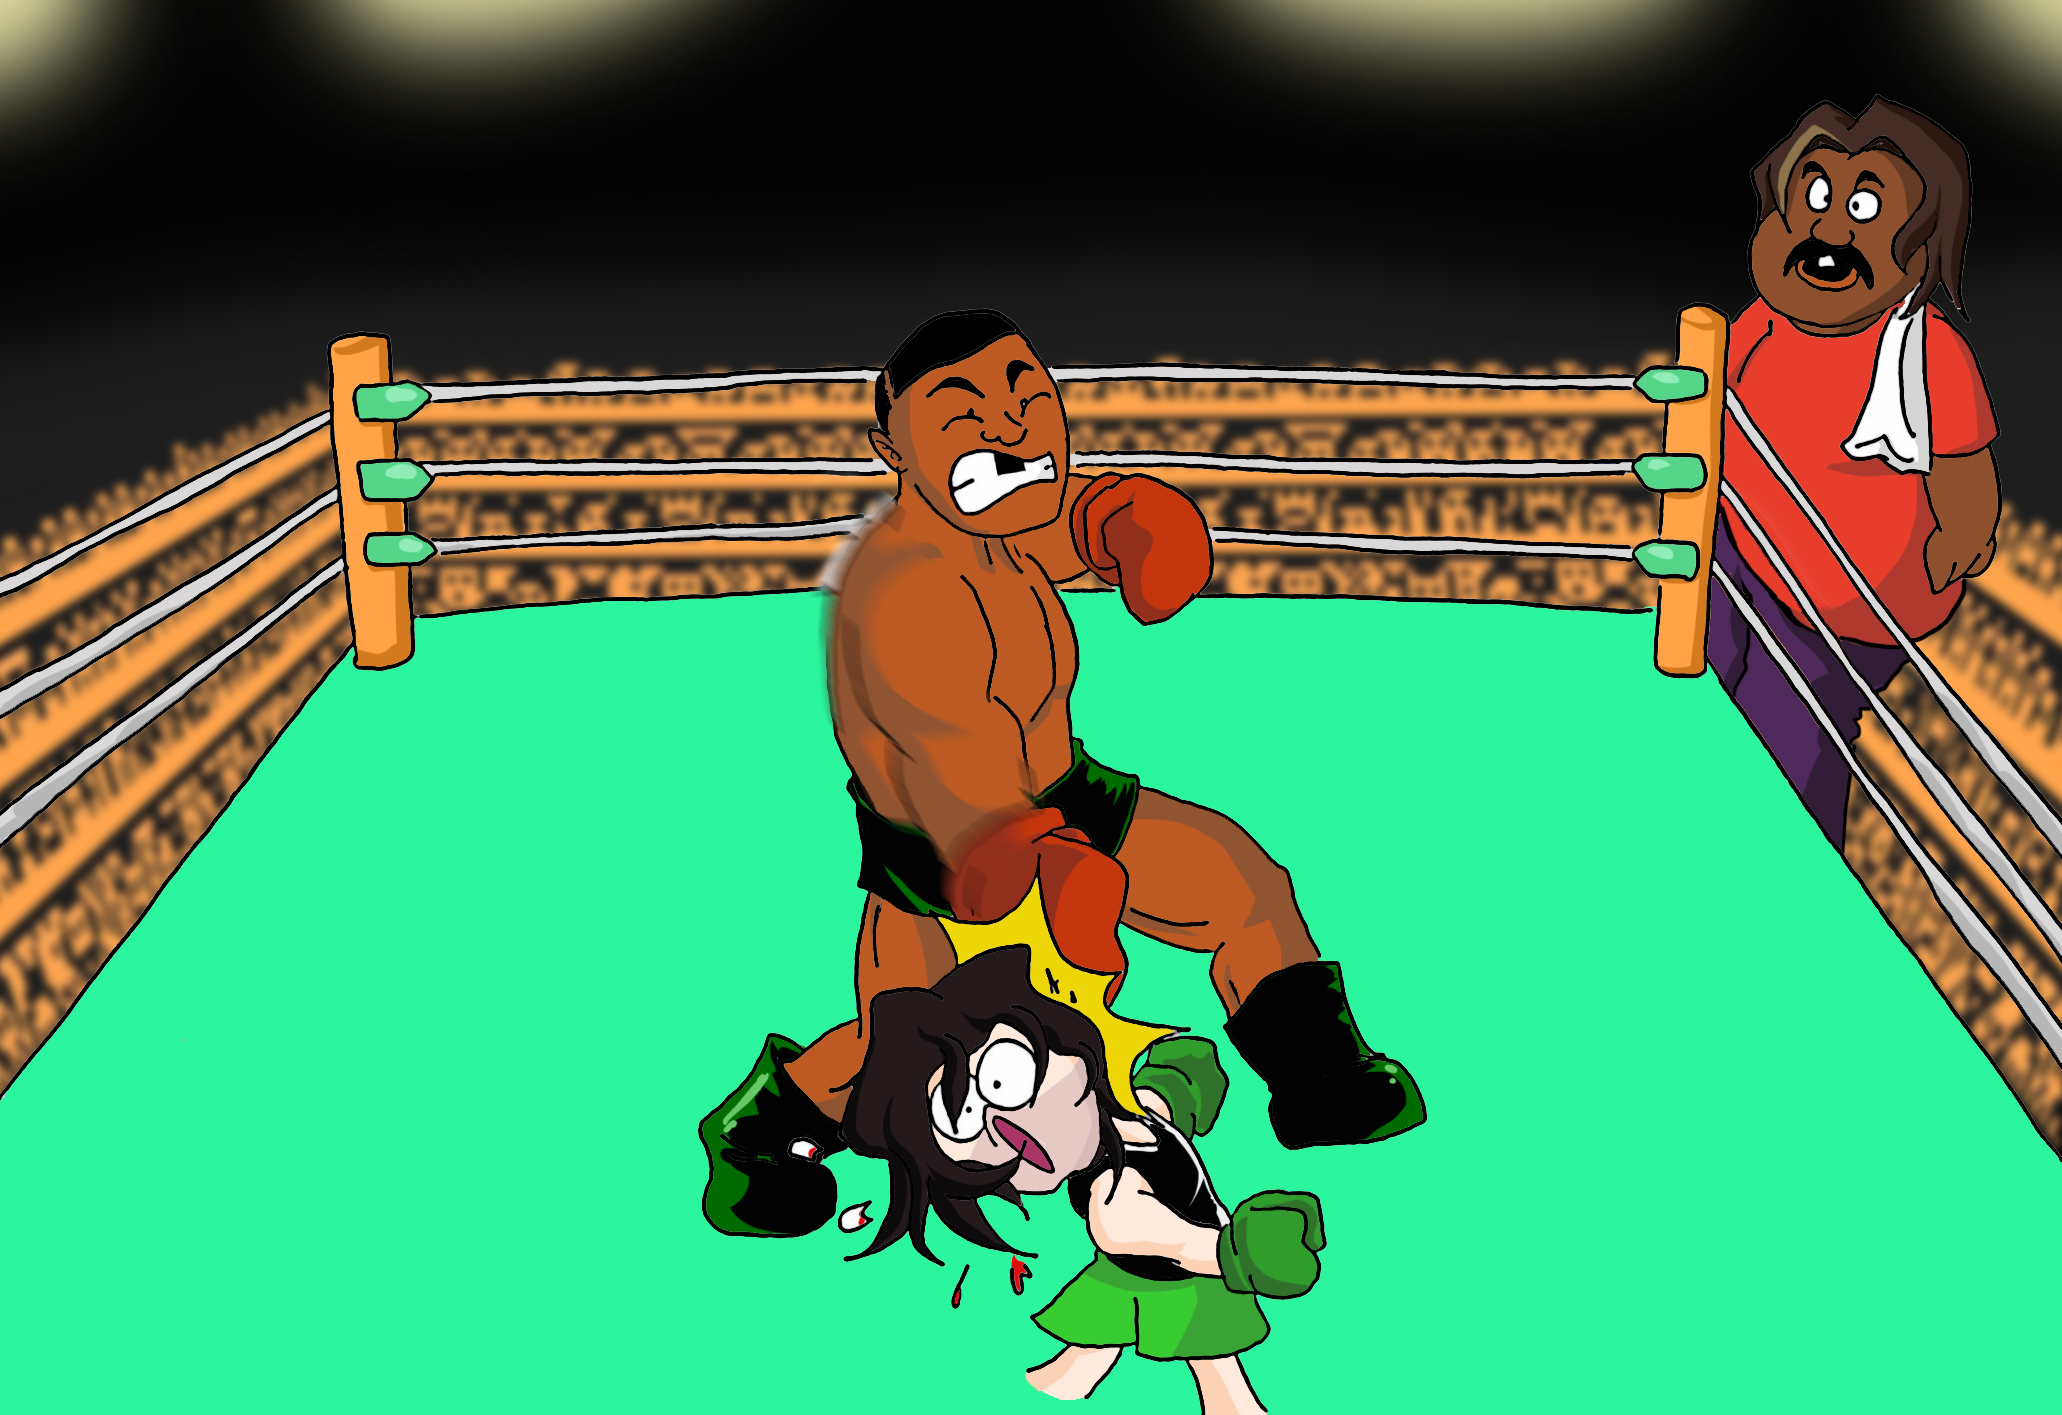 Game Grumps in Mike Tyson's Punch Out by Fredcheeseburger